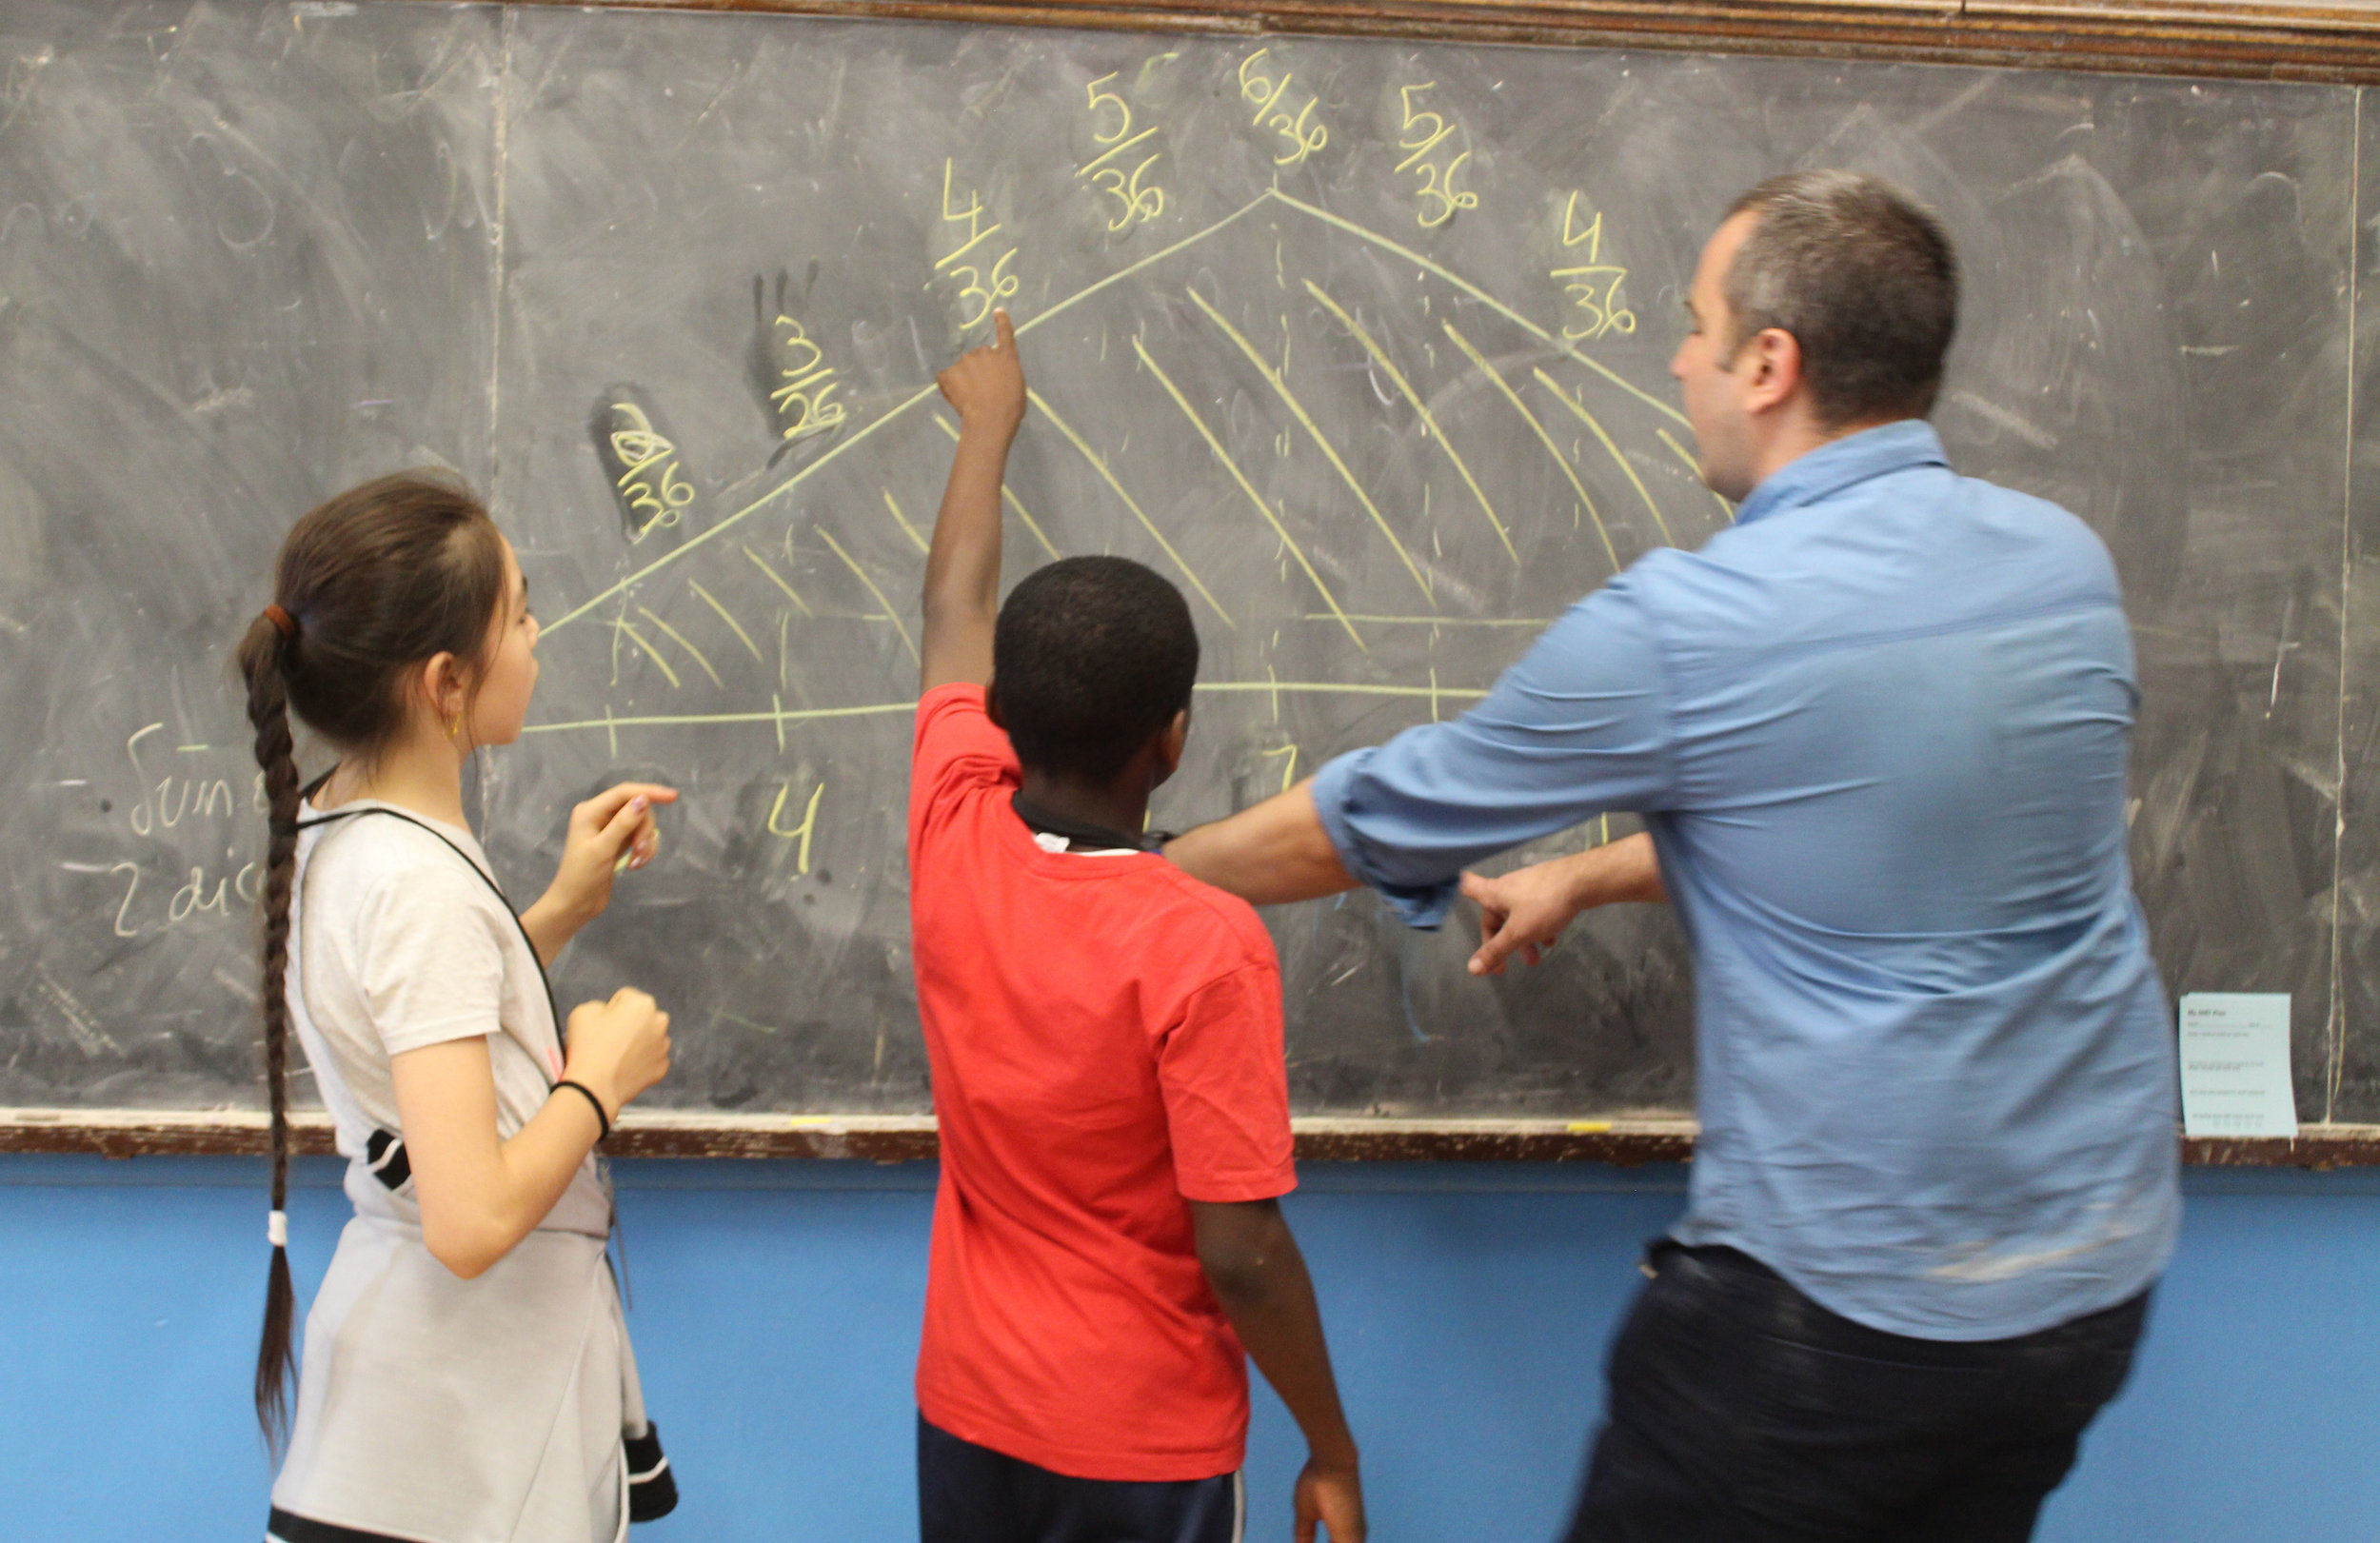 Faculty member Antonio works with students Bakhtigul and Joel on problems in probability at the non-residential program BEAM Discovery in New York City.